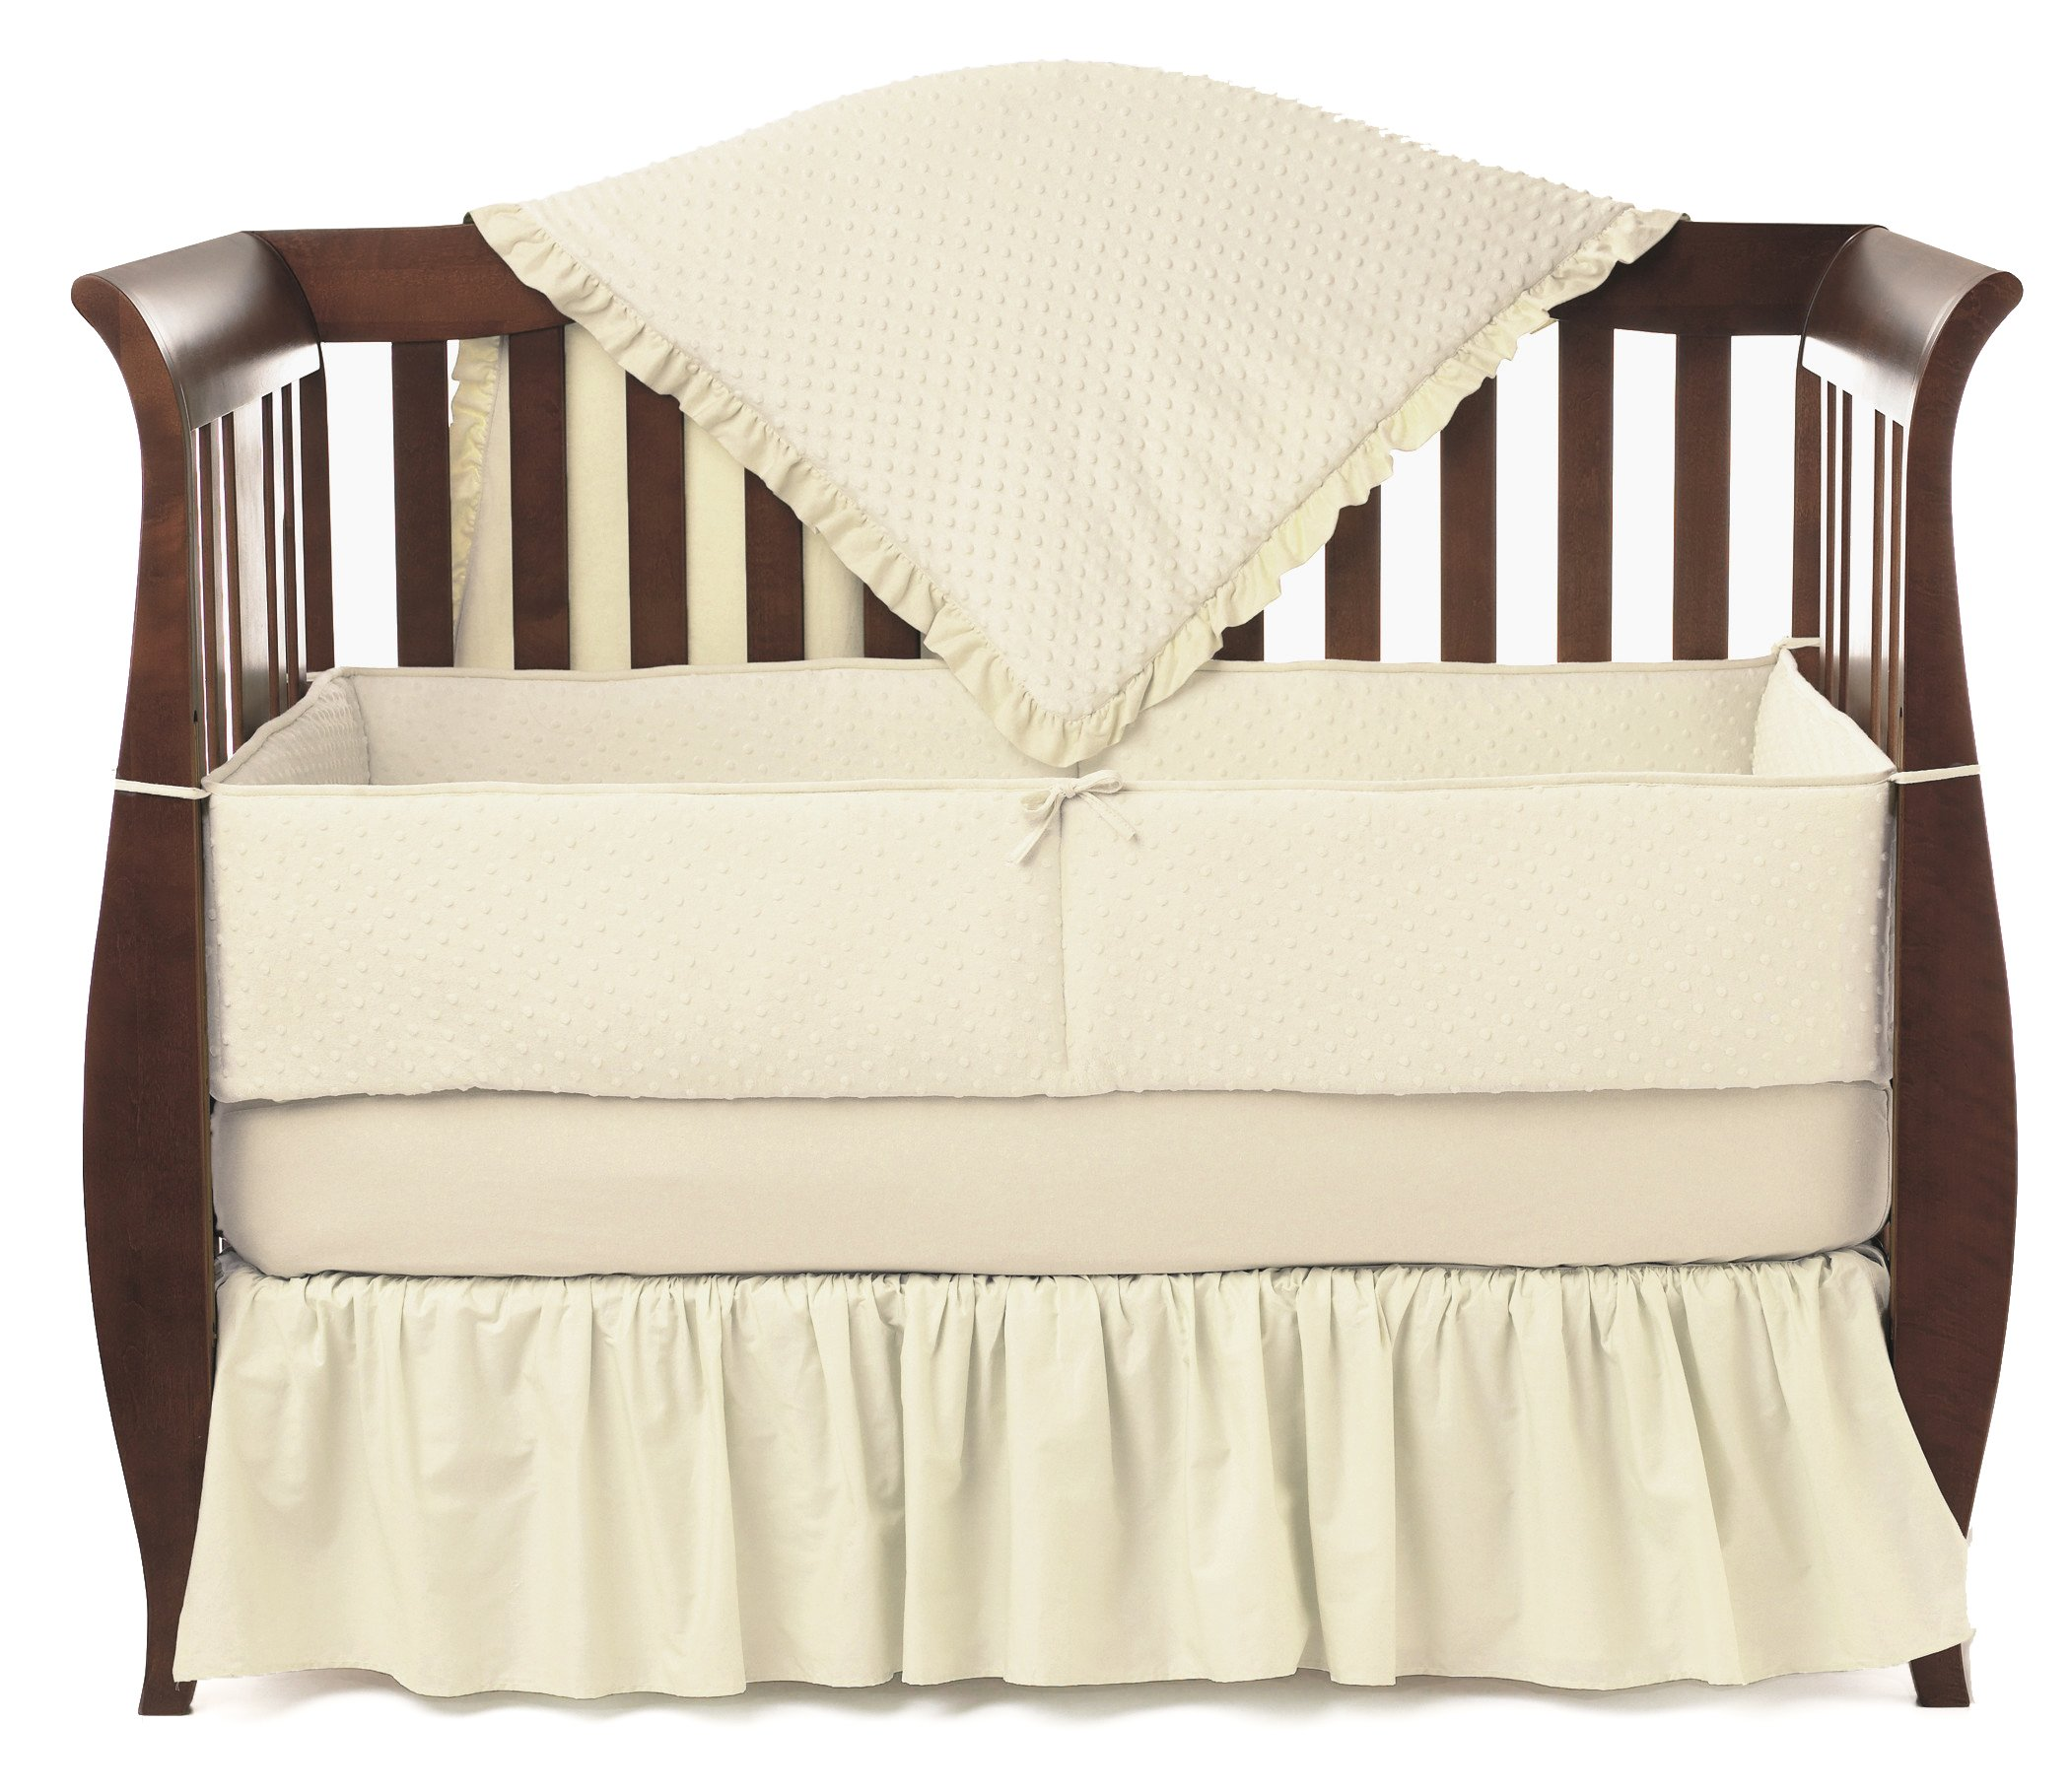 American Baby Company Heavenly Soft Minky Dot 4-Piece Crib Bedding Set, Ecru